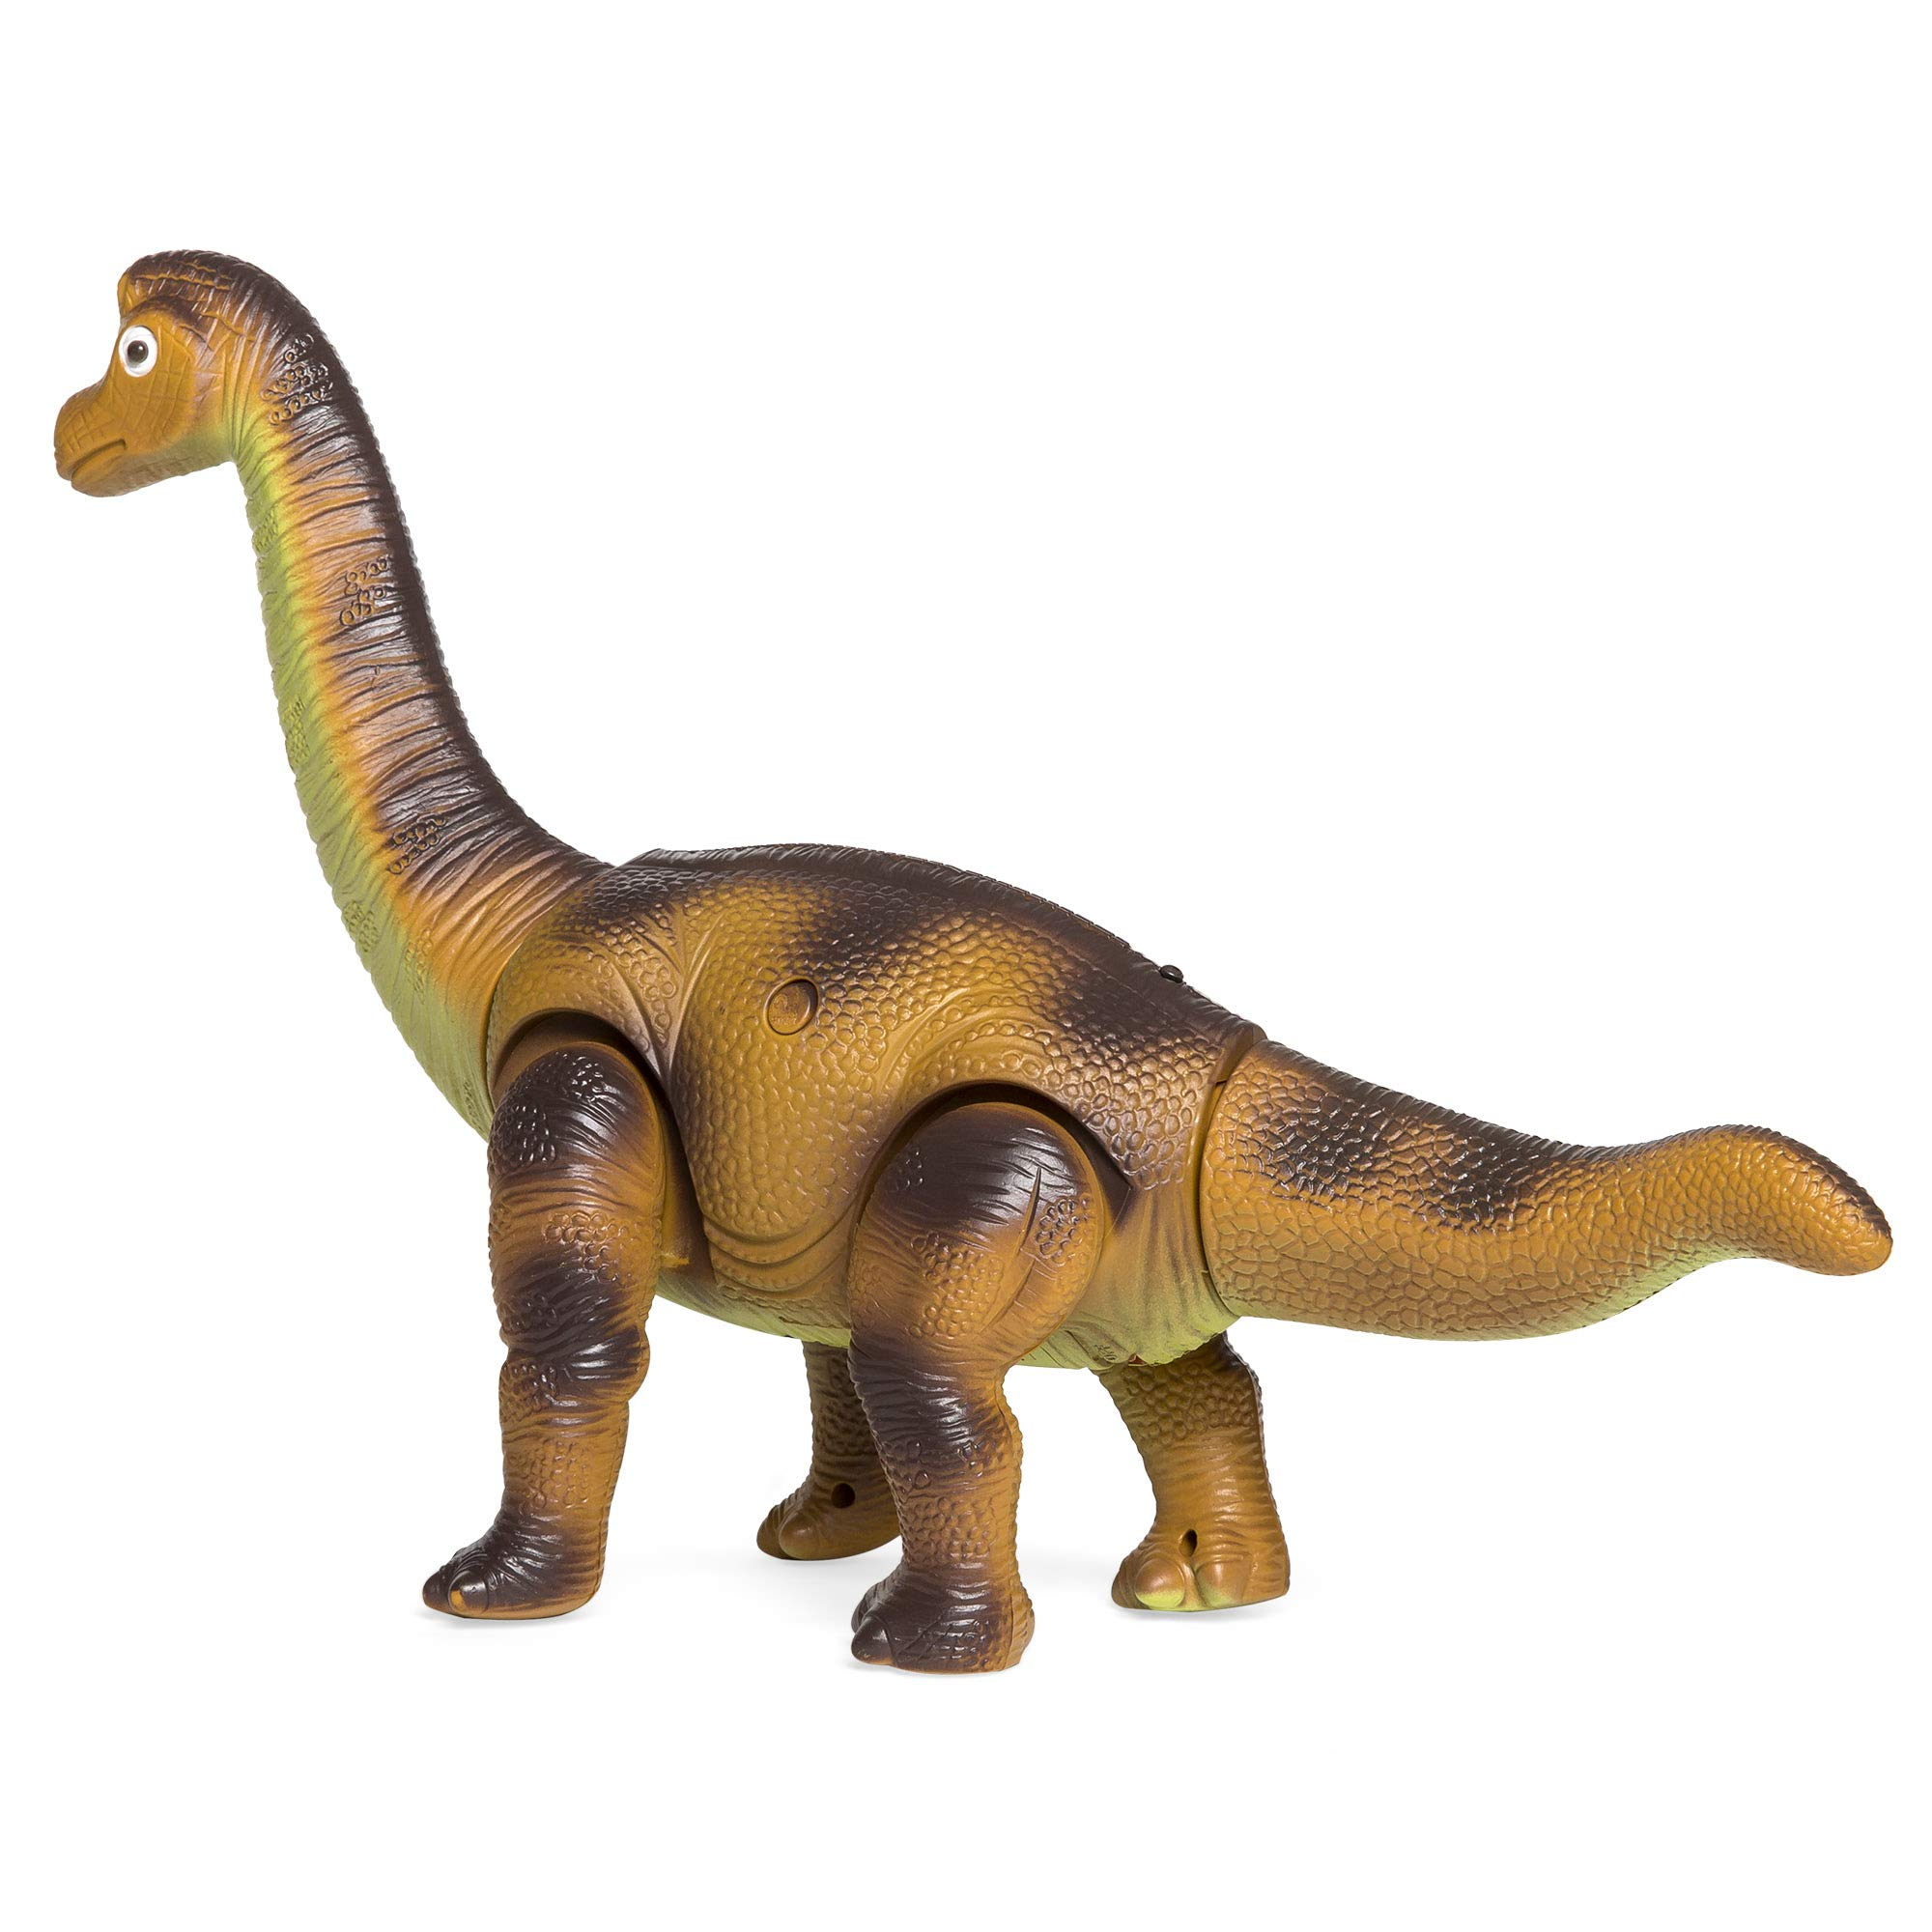 Best Choice Products 17.5in Kids RC Stomping Brachiosaurus Dinosaur Electric Animal Toy Robot w/ Light Up Eyes, Roaring Sounds, Swinging Head, Remote Control by Best Choice Products (Image #4)